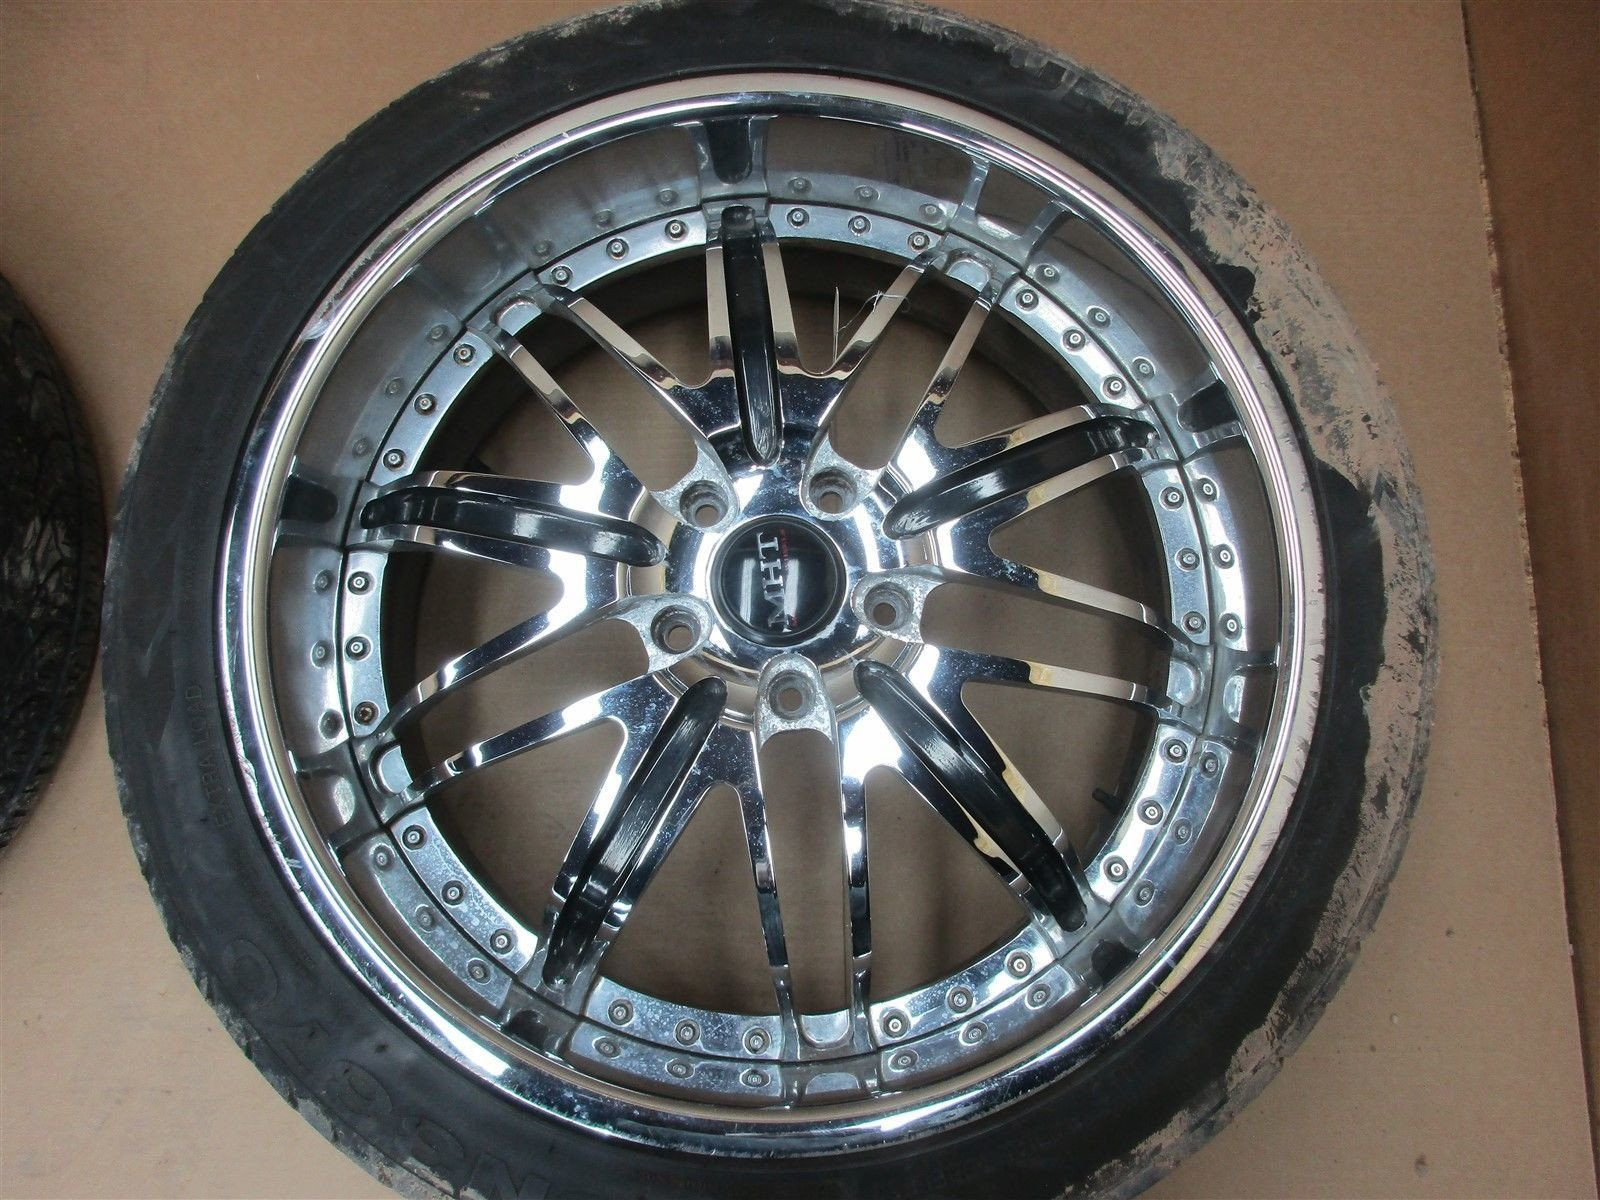 04 Cayenne S AWD Porsche 955 AFTERMARKET MHT FRONT REAR RIMS WHEELS 22x9.5 140,3